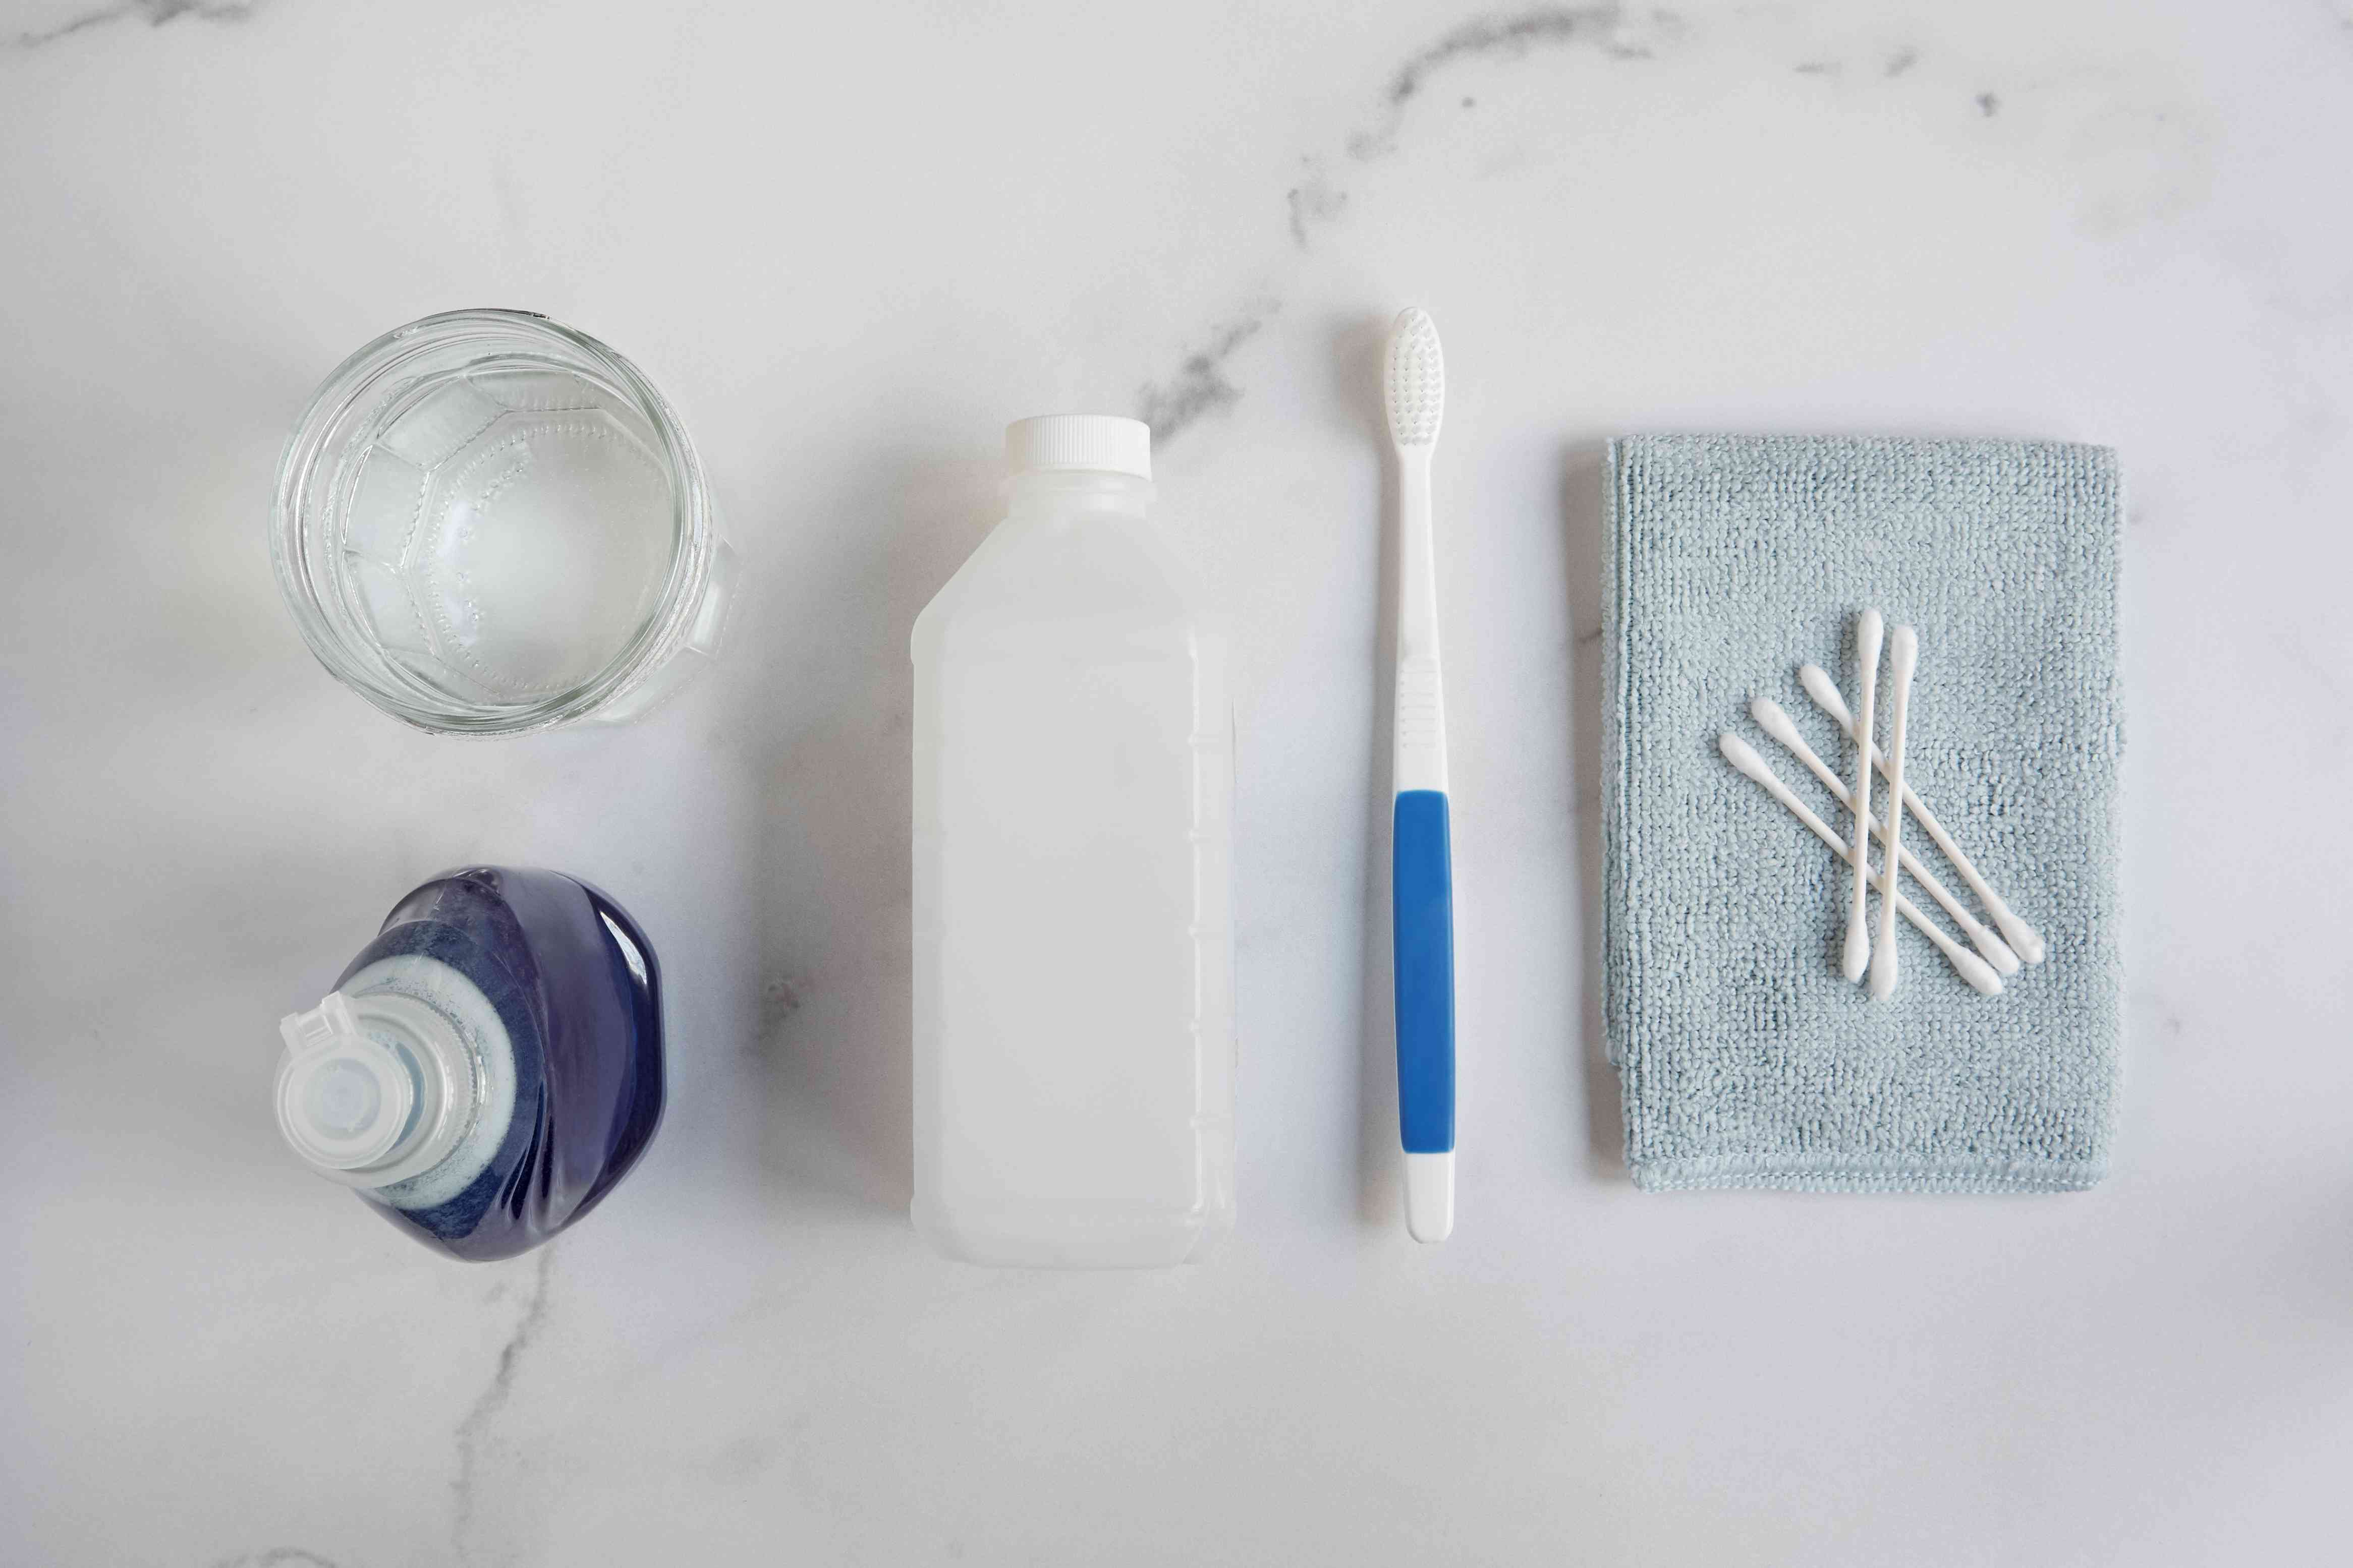 materials for cleaning earbuds